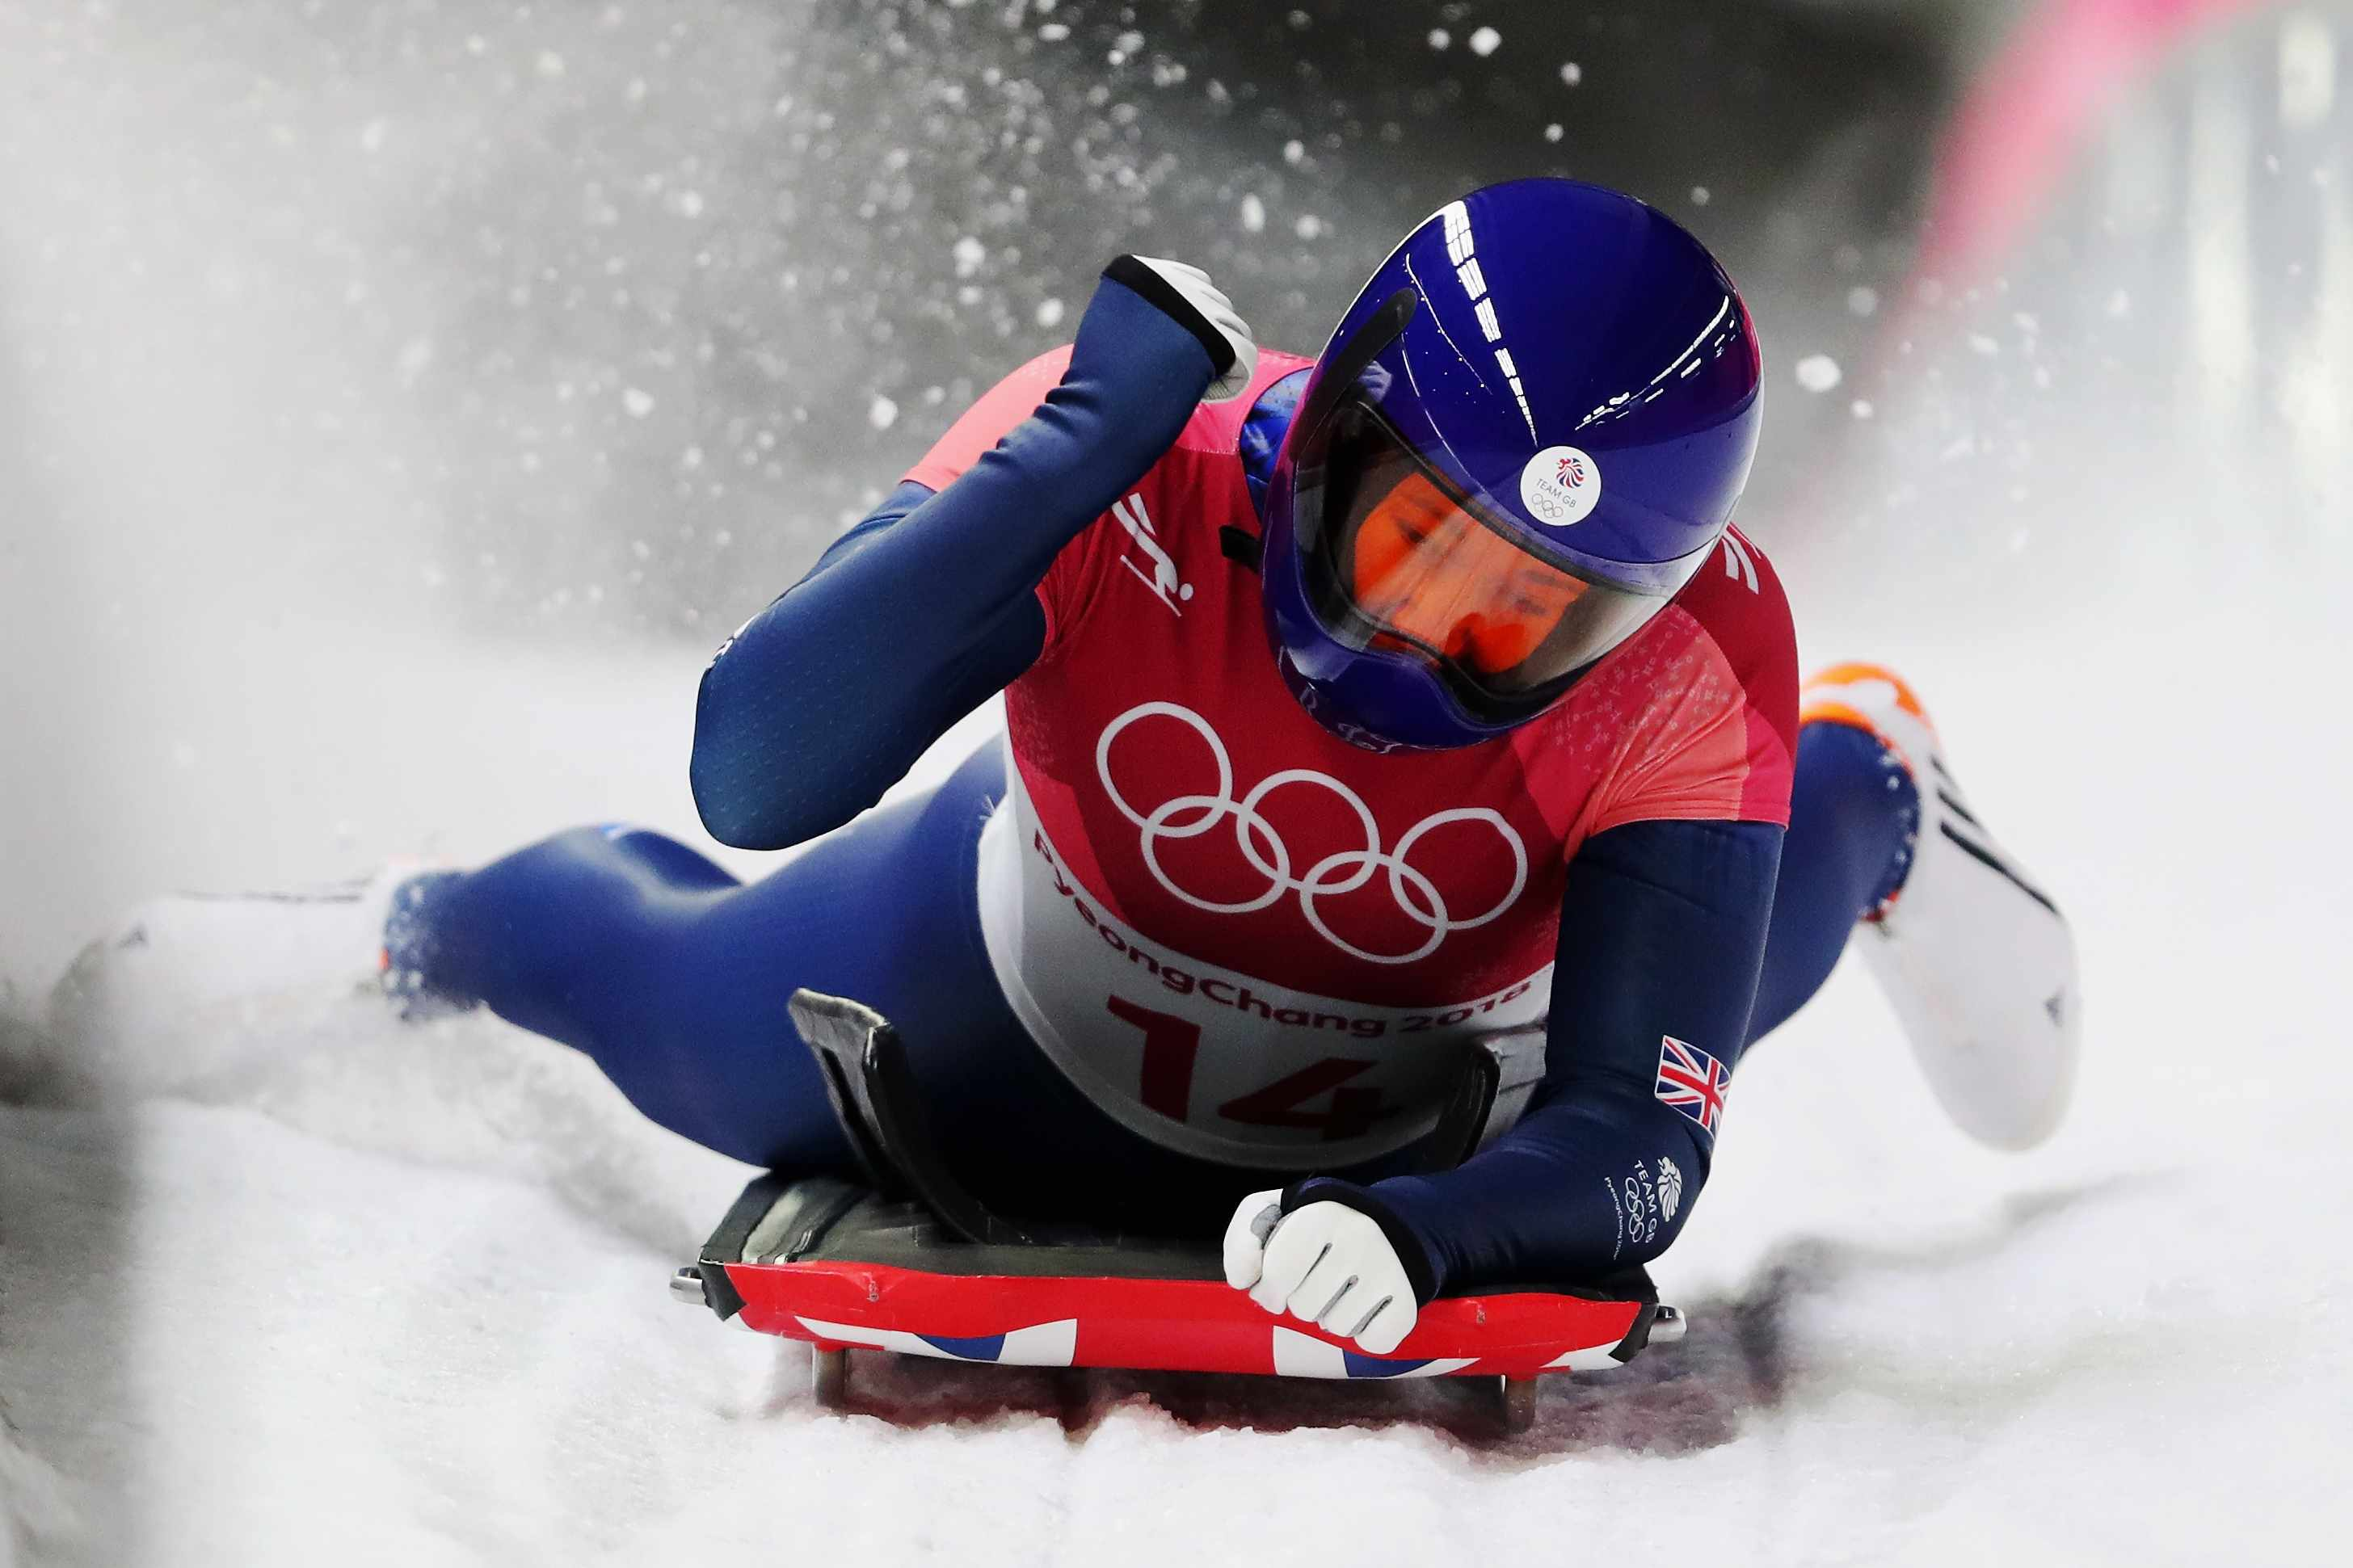 Lizzie Yarnold wins Team GB's first gold at the Winter Olympics 2018